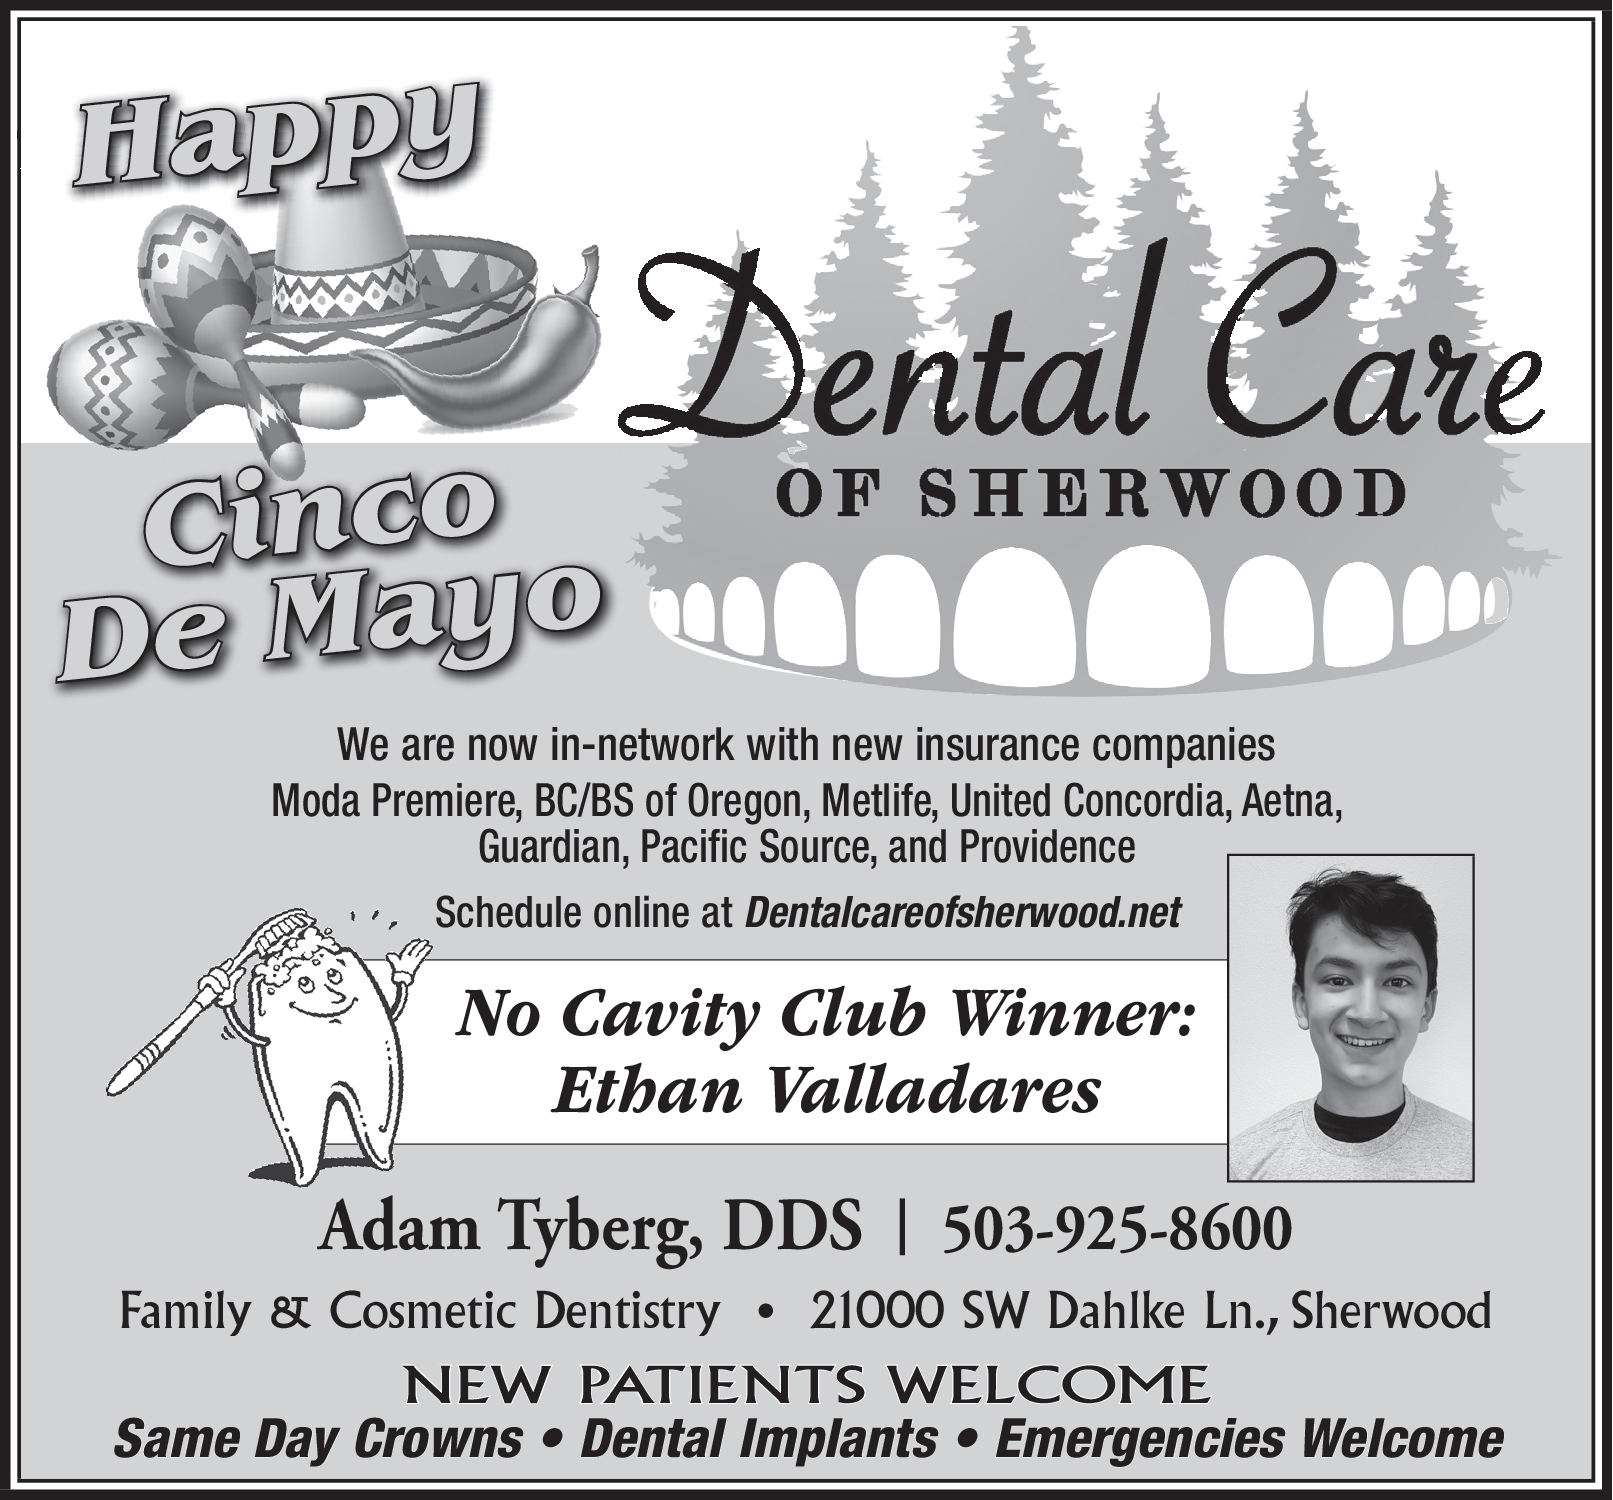 Family And Cosmetic Dentistry in Sherwood, OR, Dental Care - Dental